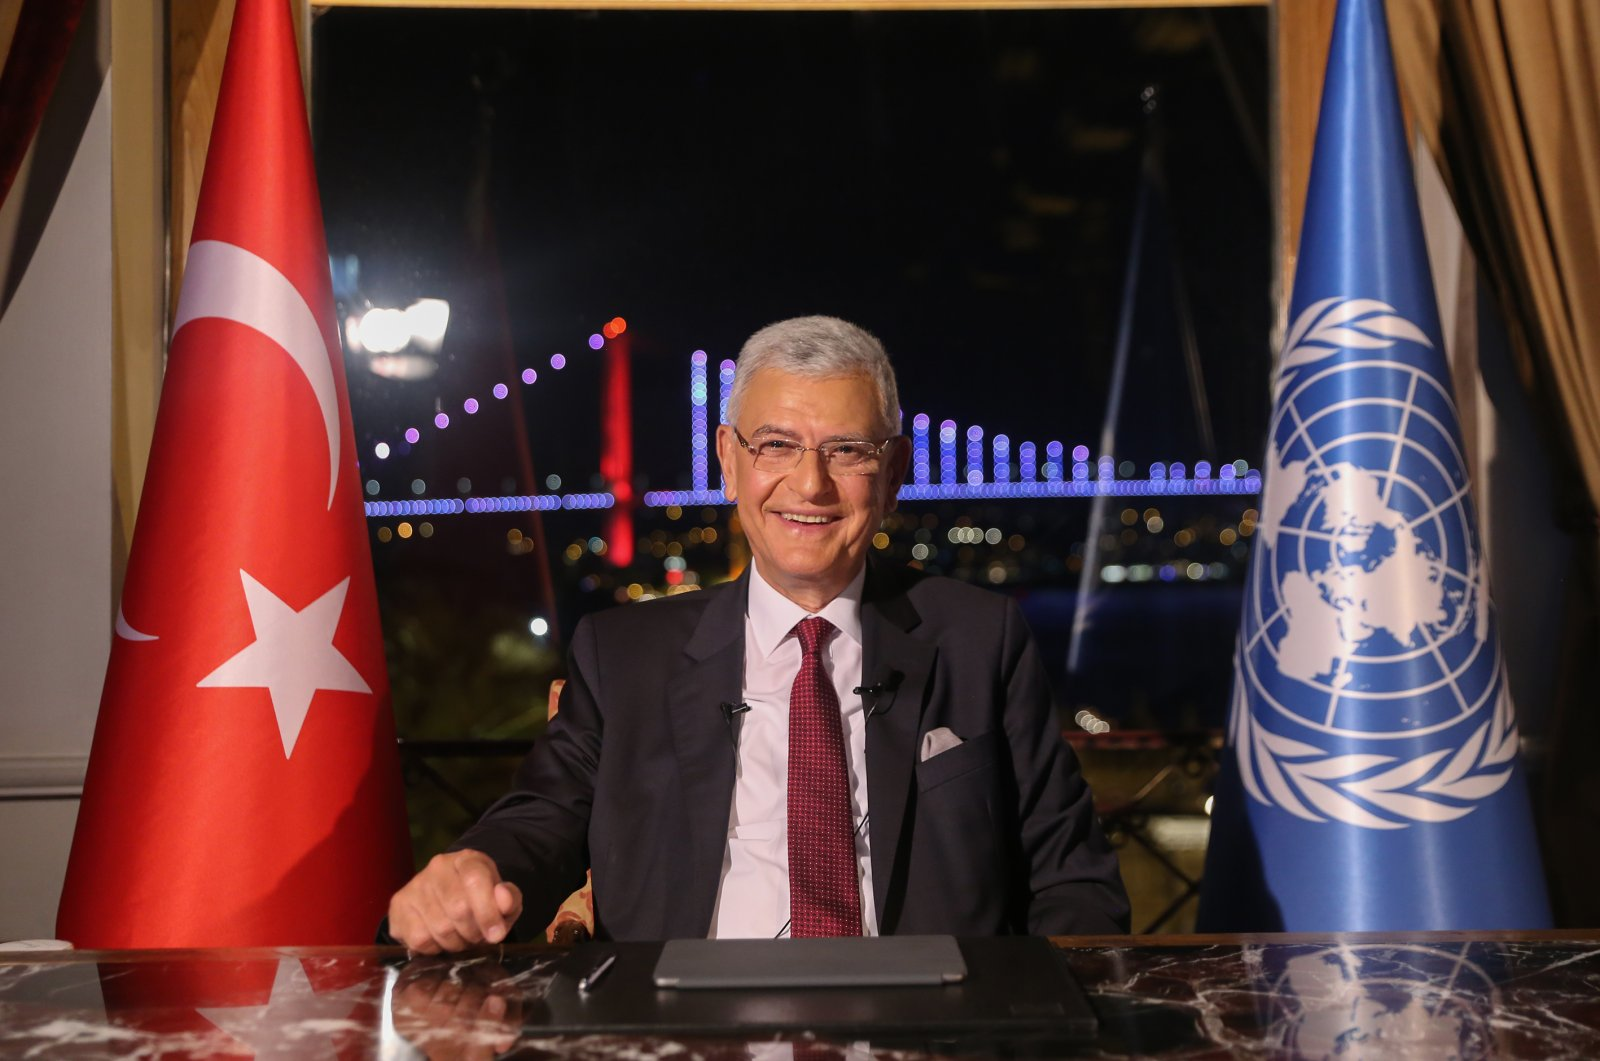 Turkish diplomat Volkan Bozkır poses before an opening speech as the 75th president of the United Nations General Assembly (UNGA), in a videoconference, Istanbul, Turkey, June 22, 2020. (AA Photo)